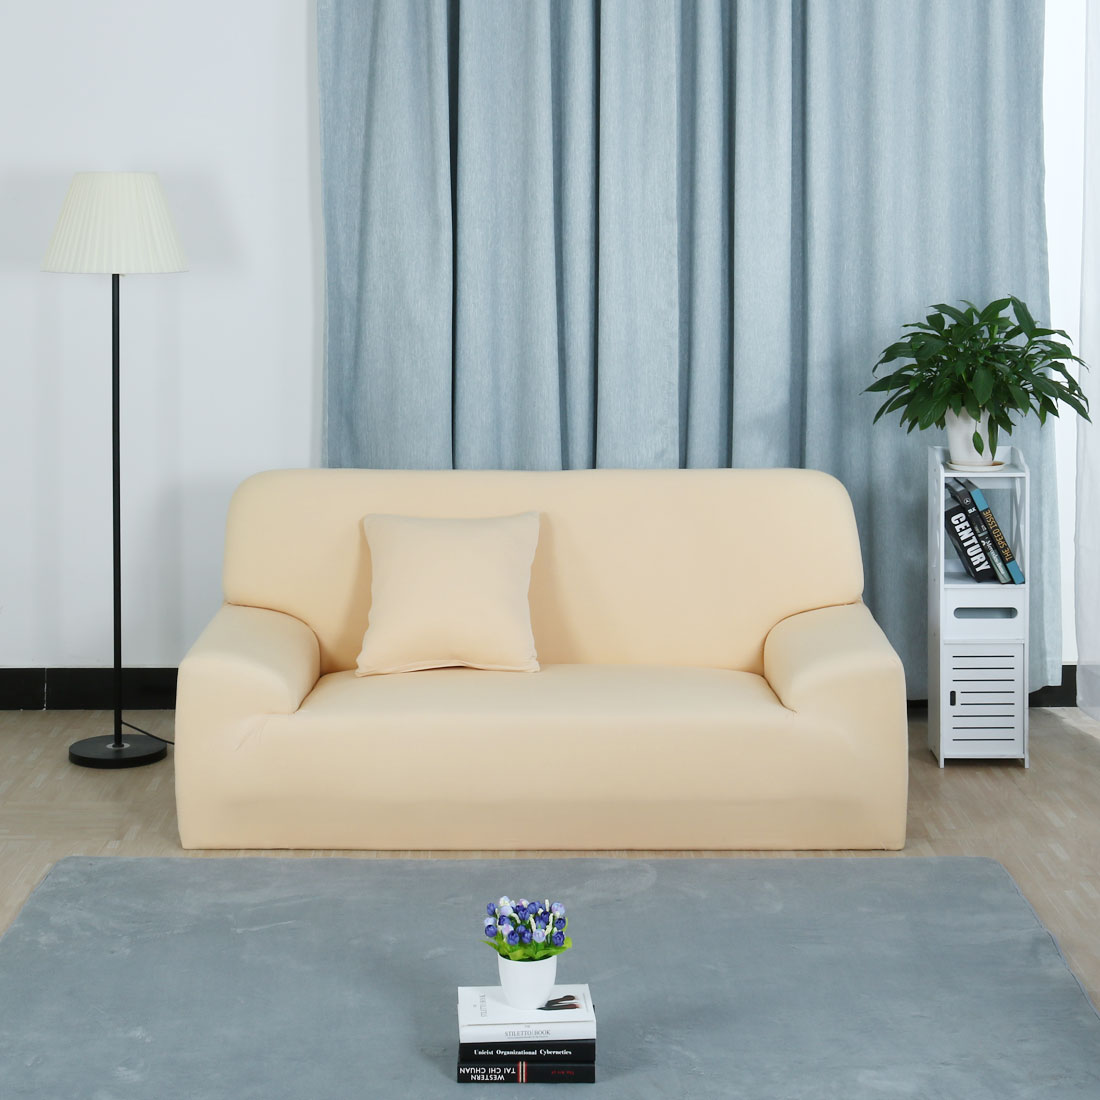 Stretch Chair Sofa Covers Couch Slipcover Dark Blue Sofa-4seater